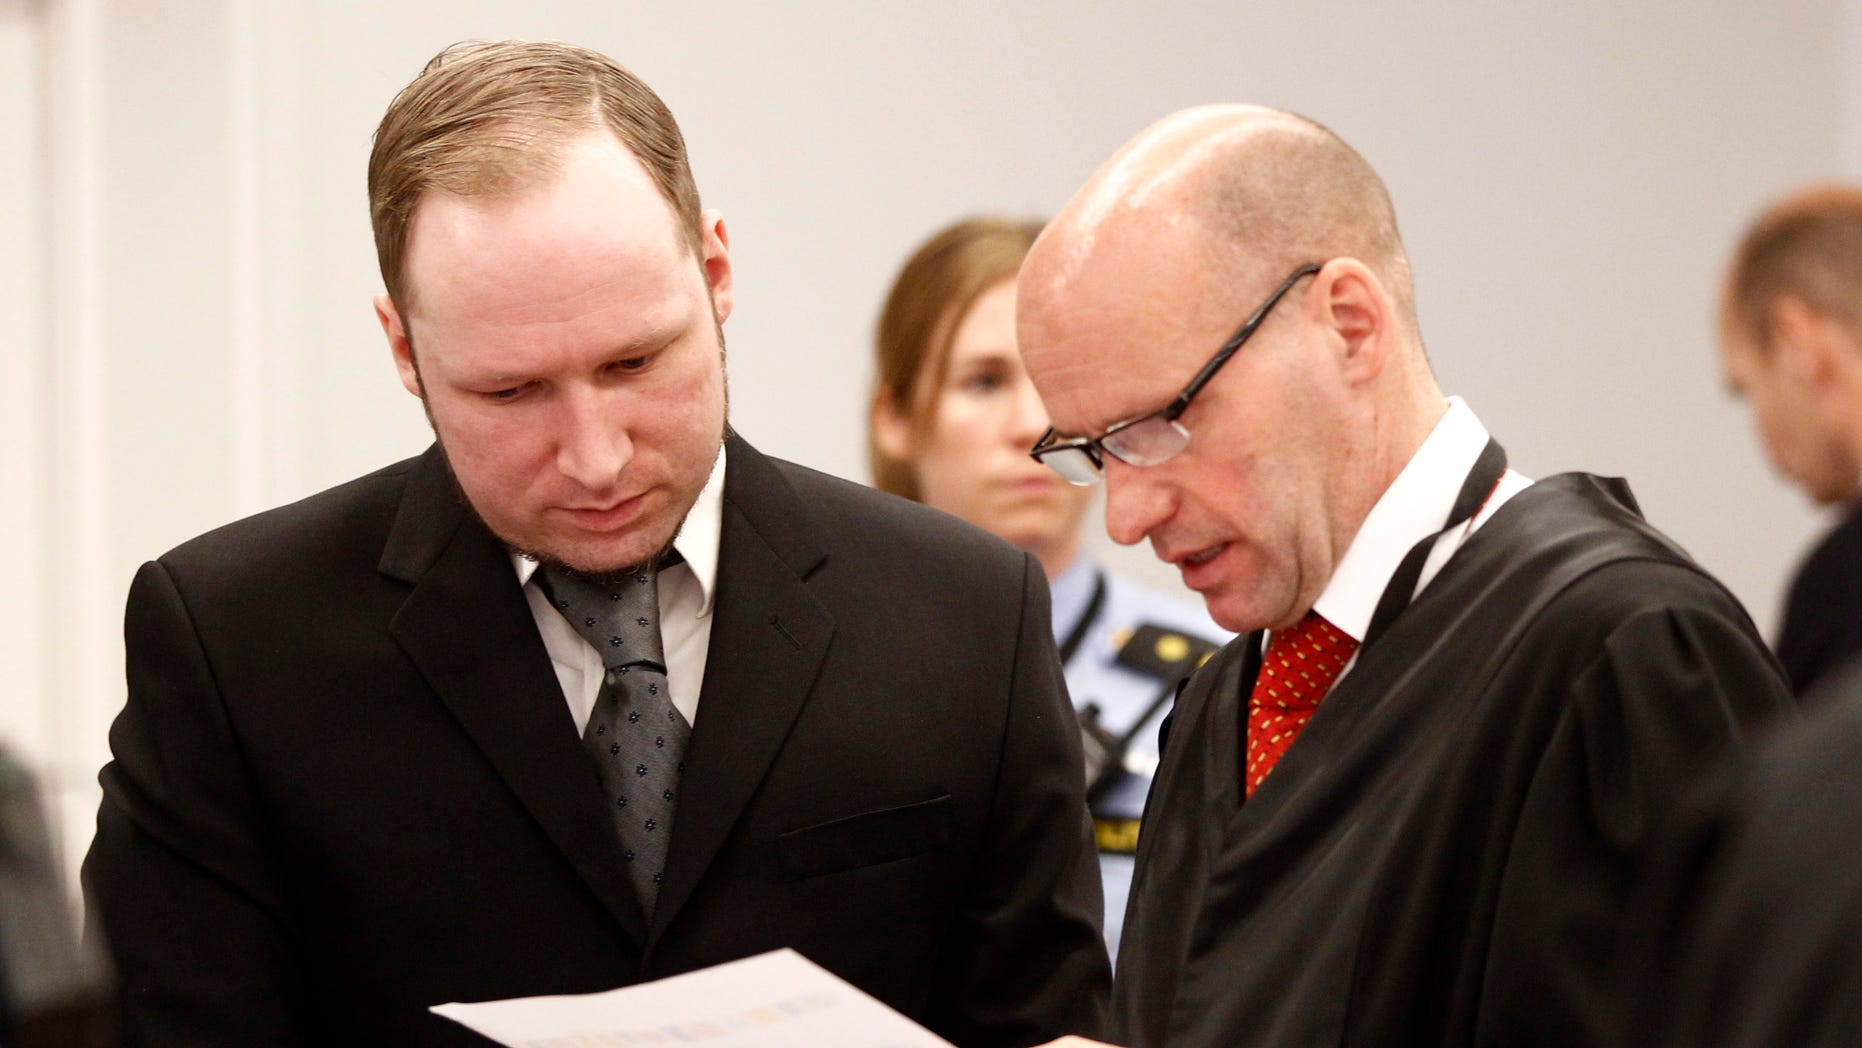 April 23: Anders Behring Breivik (left), and his defence lawyer Geir Lippestad during the morning break on day 6 of the trial in Oslo.